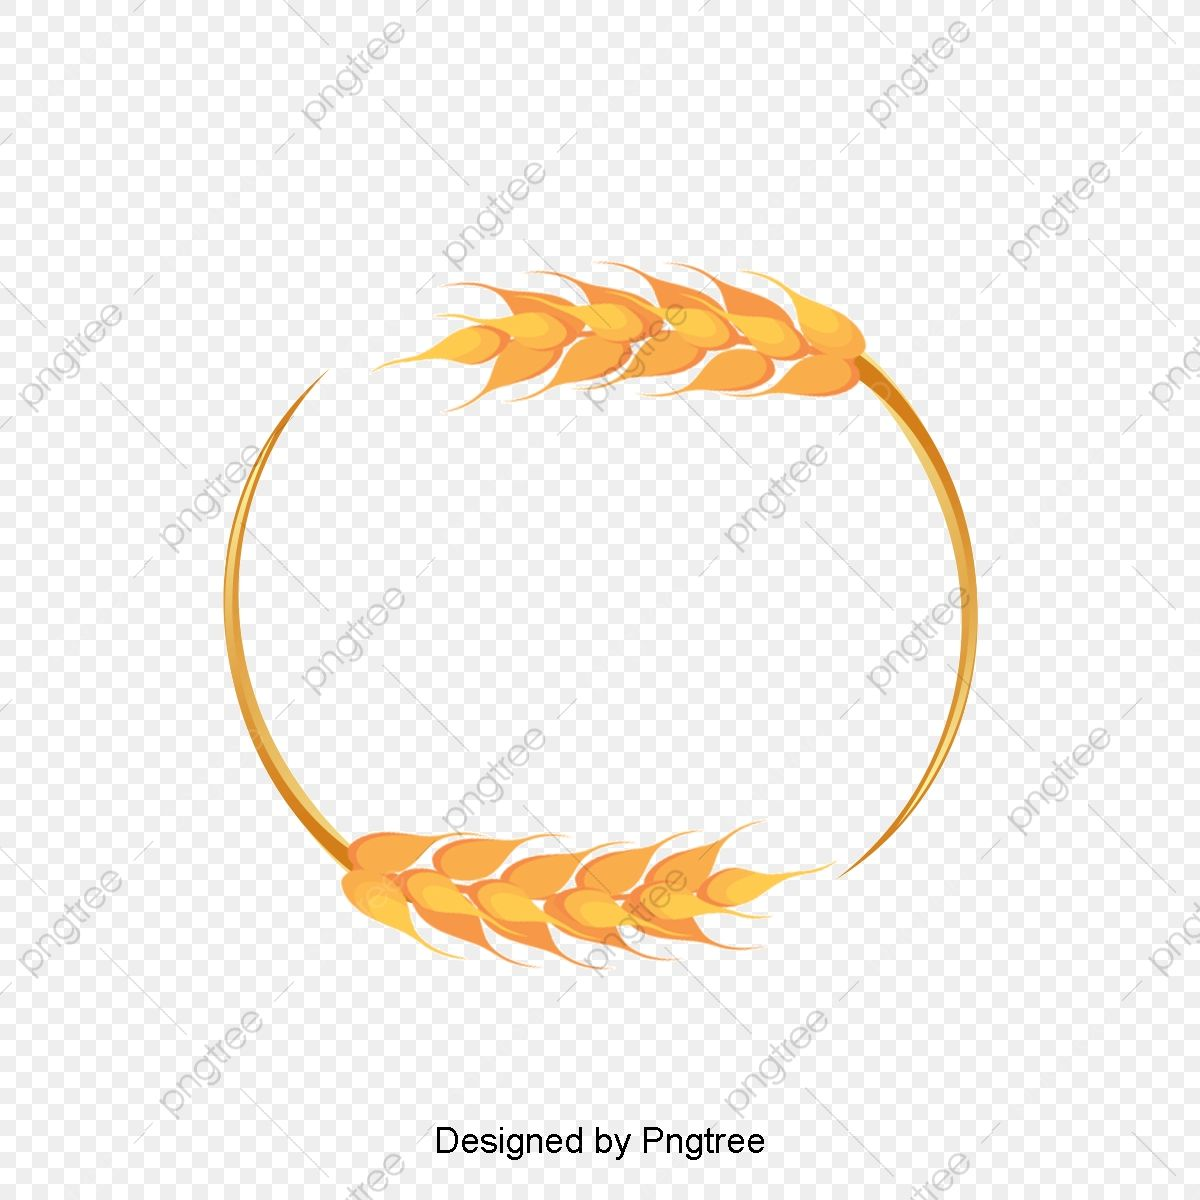 Beautiful Wheat Border Frame Vector Wheat Wheat Png Transparent Clipart Image And Psd File For Free Download Frame Design Clip Art Graphic Resources